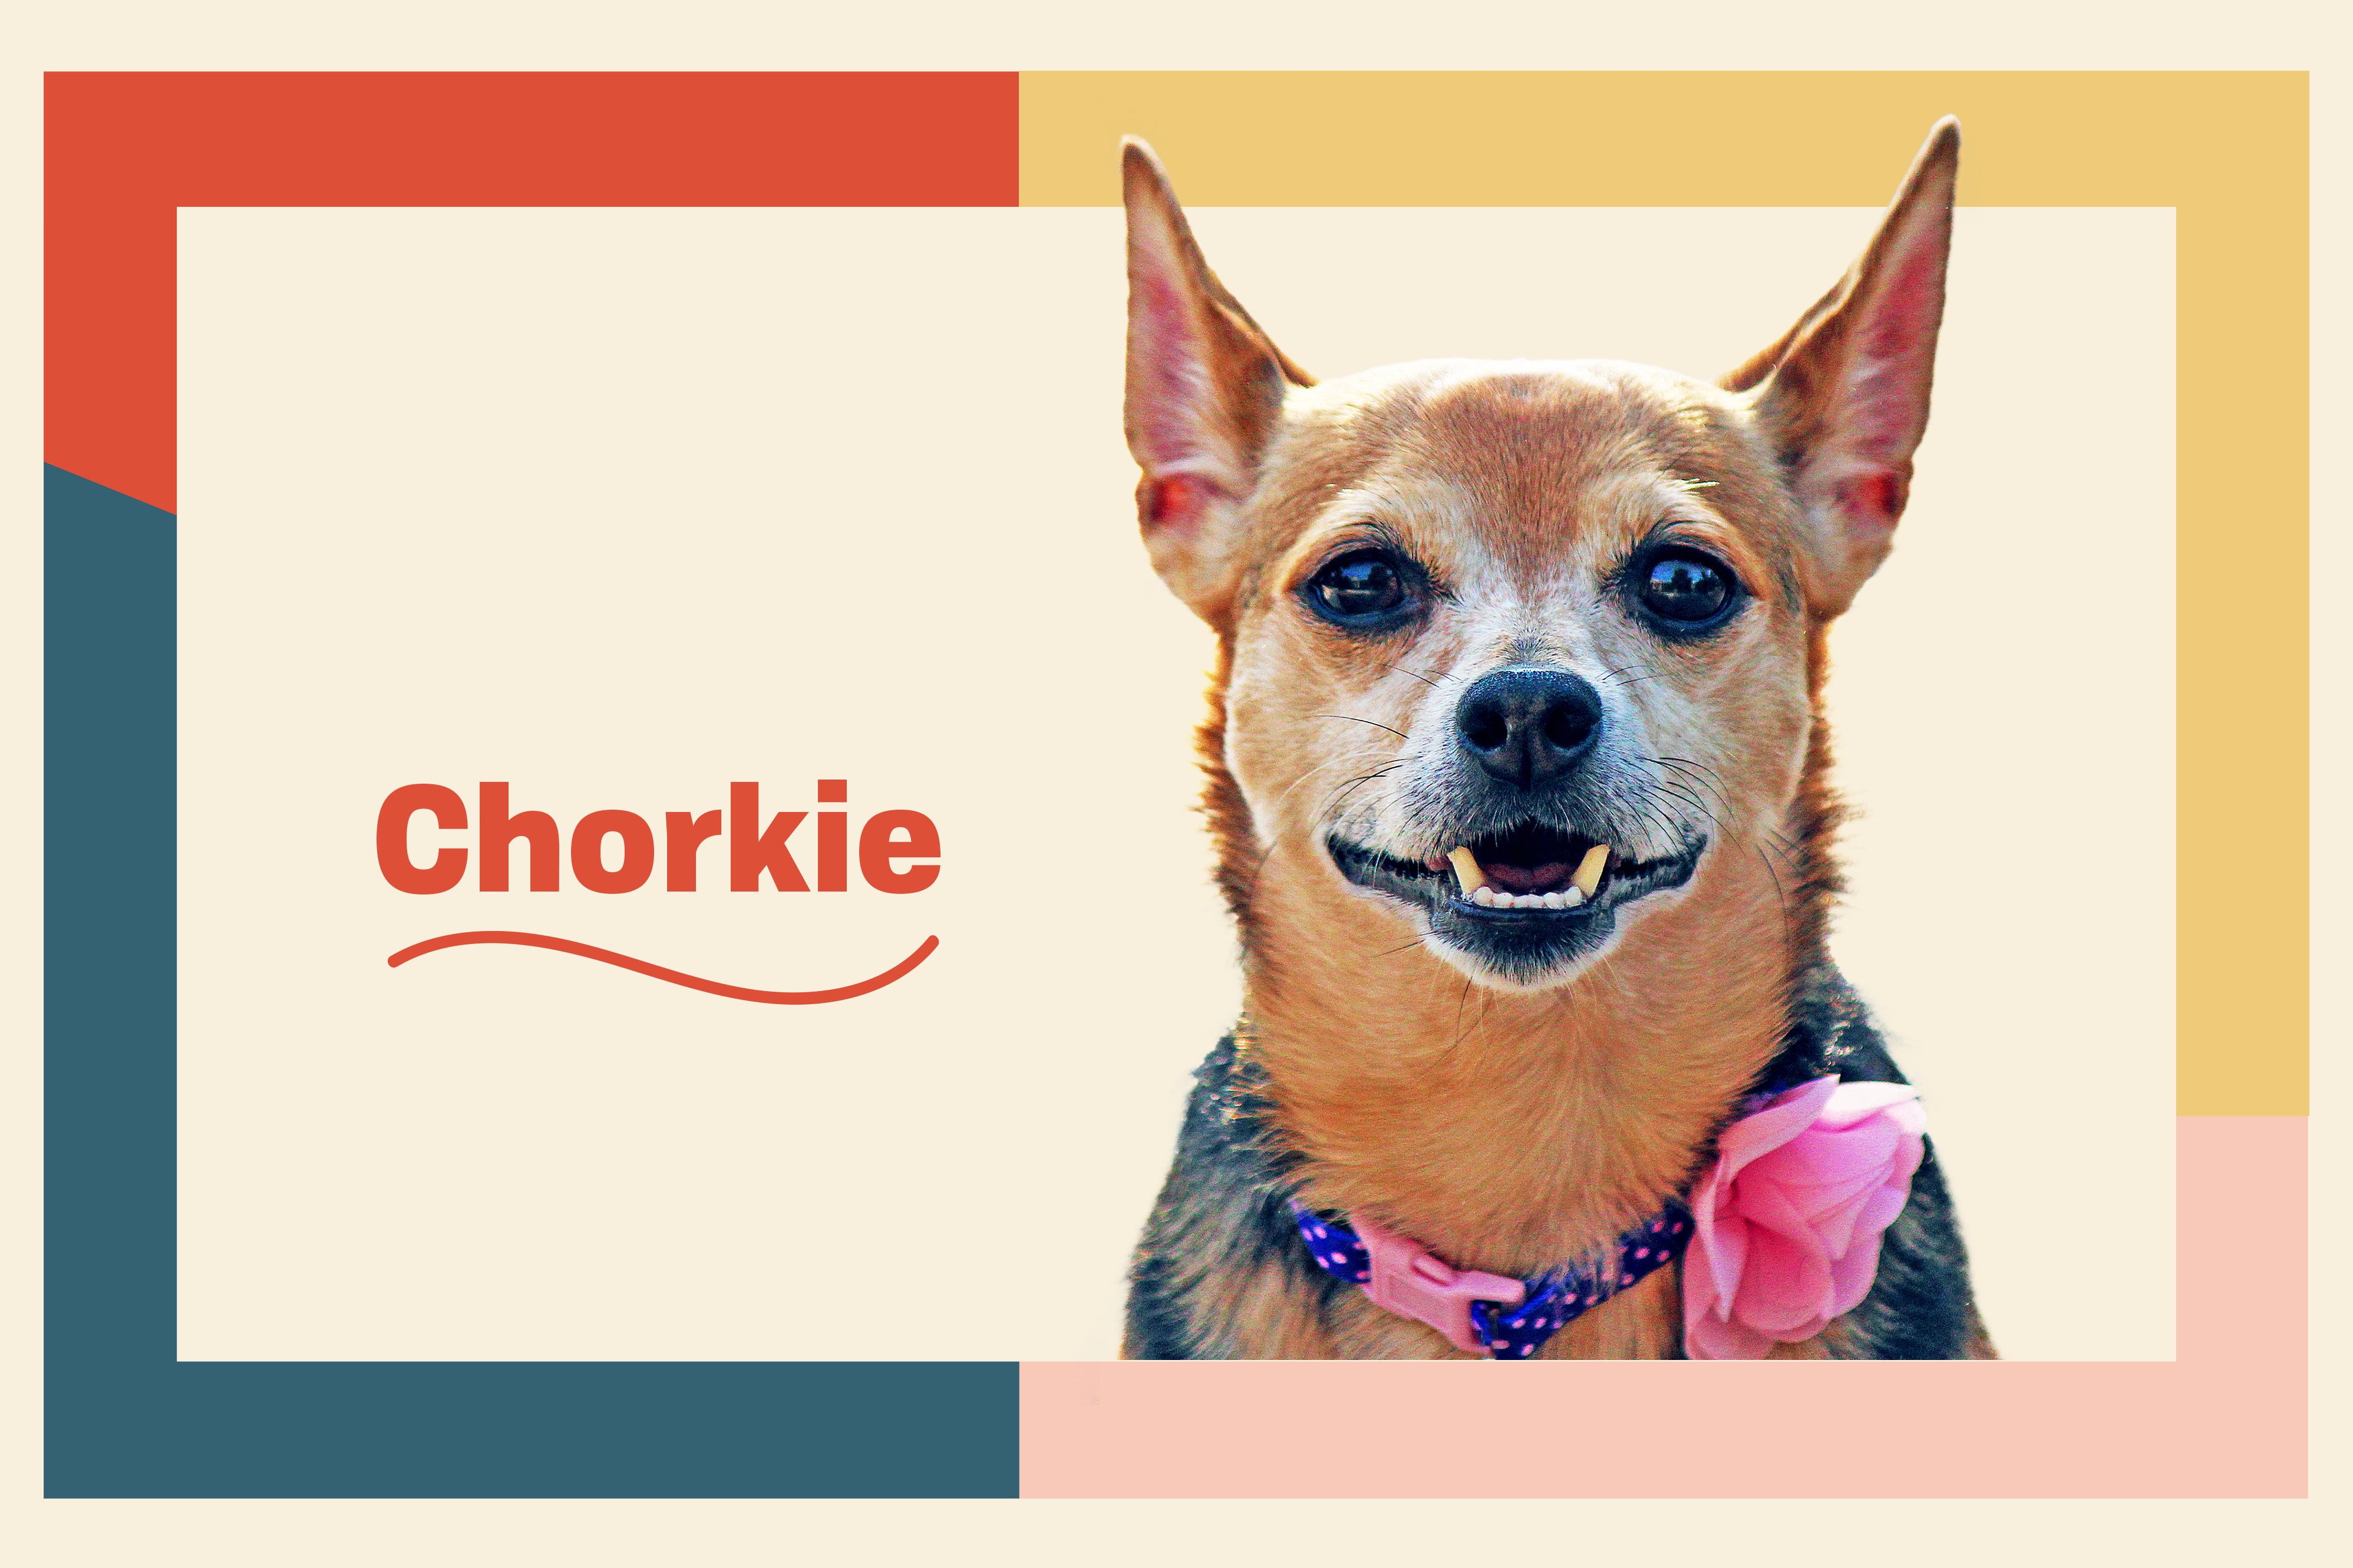 chorkie dog breed profile treatment with dog wearing a pink flower collar